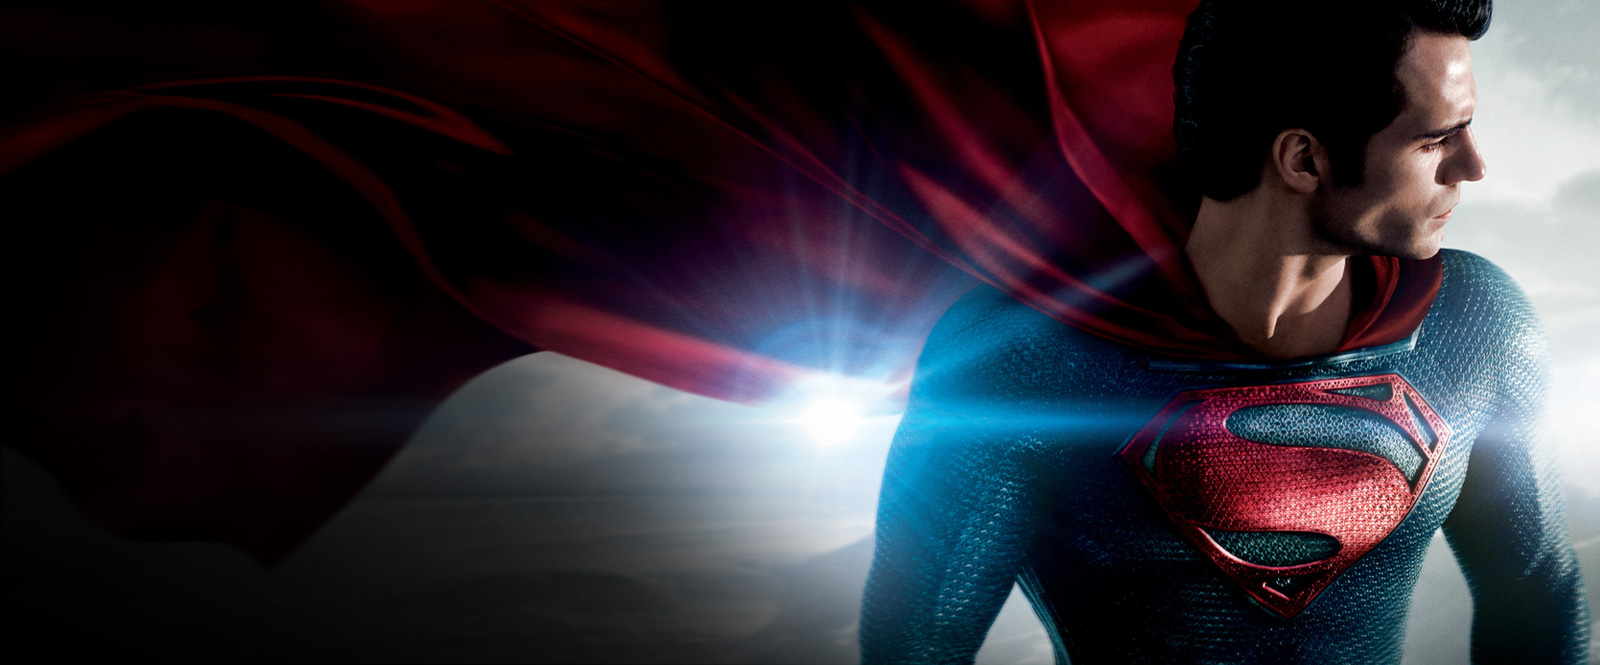 Image via: manofsteel.warnerbros.com